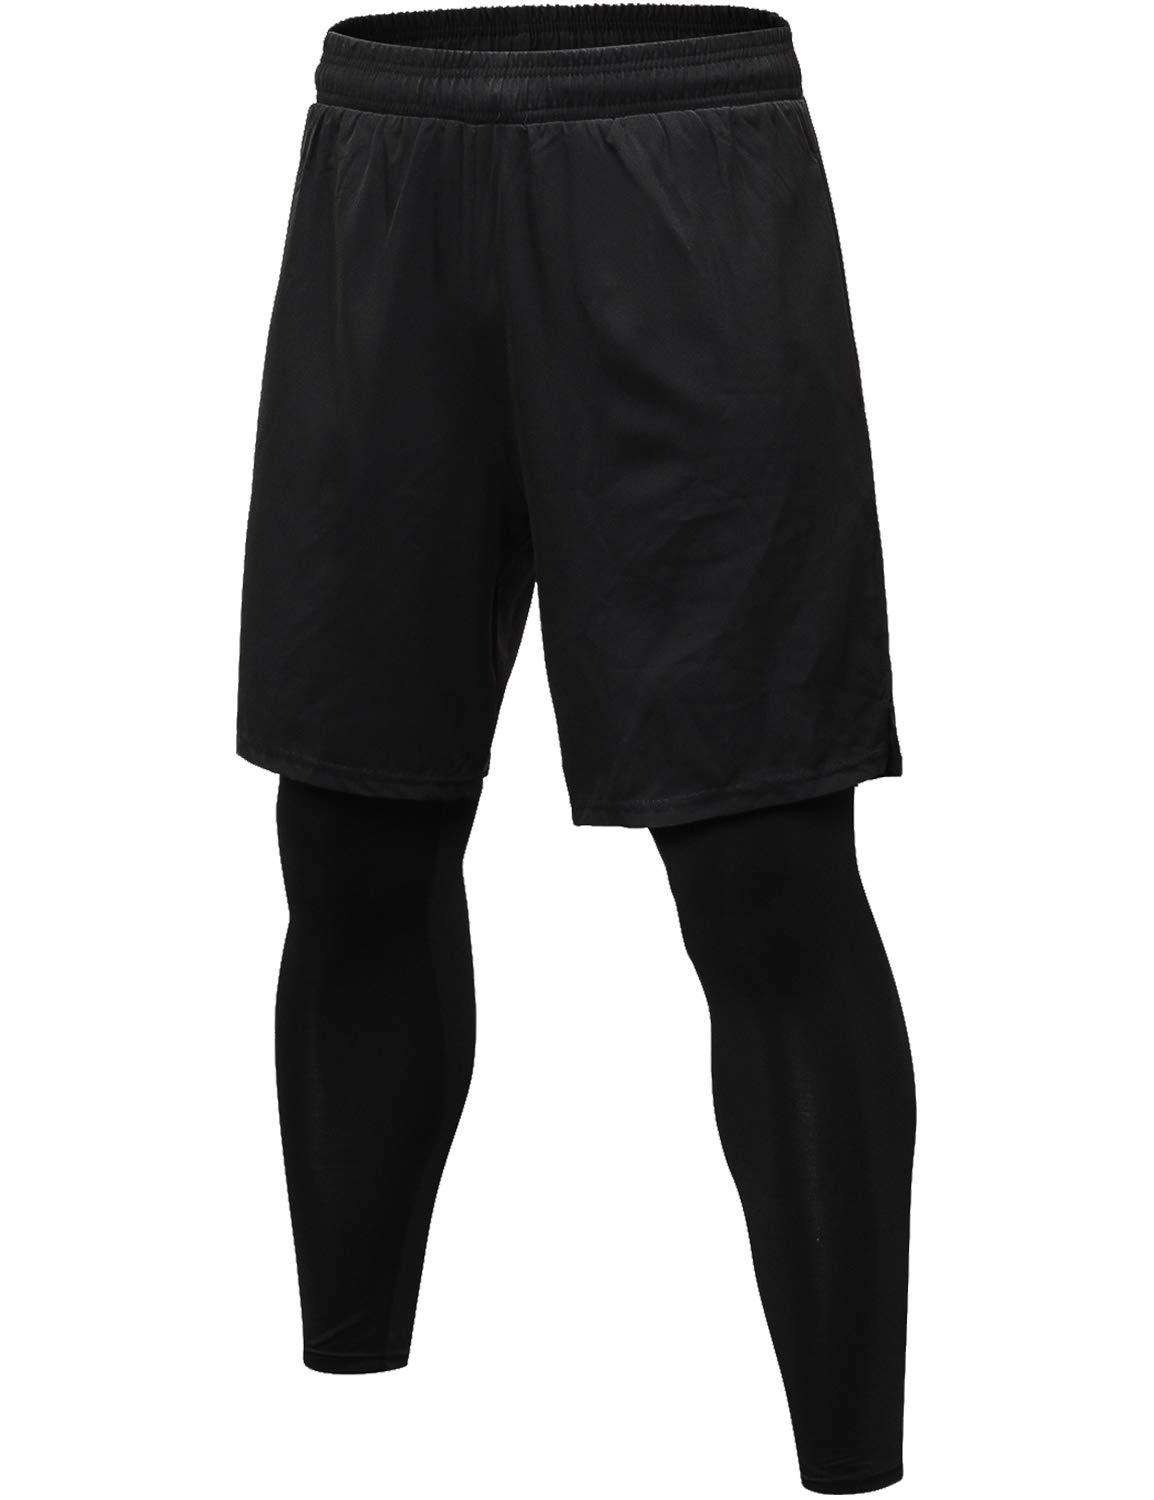 Lavento Men's 2-in-1 Running Shorts with Built-in Compression Leggings (1 Pack-3912 Black, X-Large) by Lavento